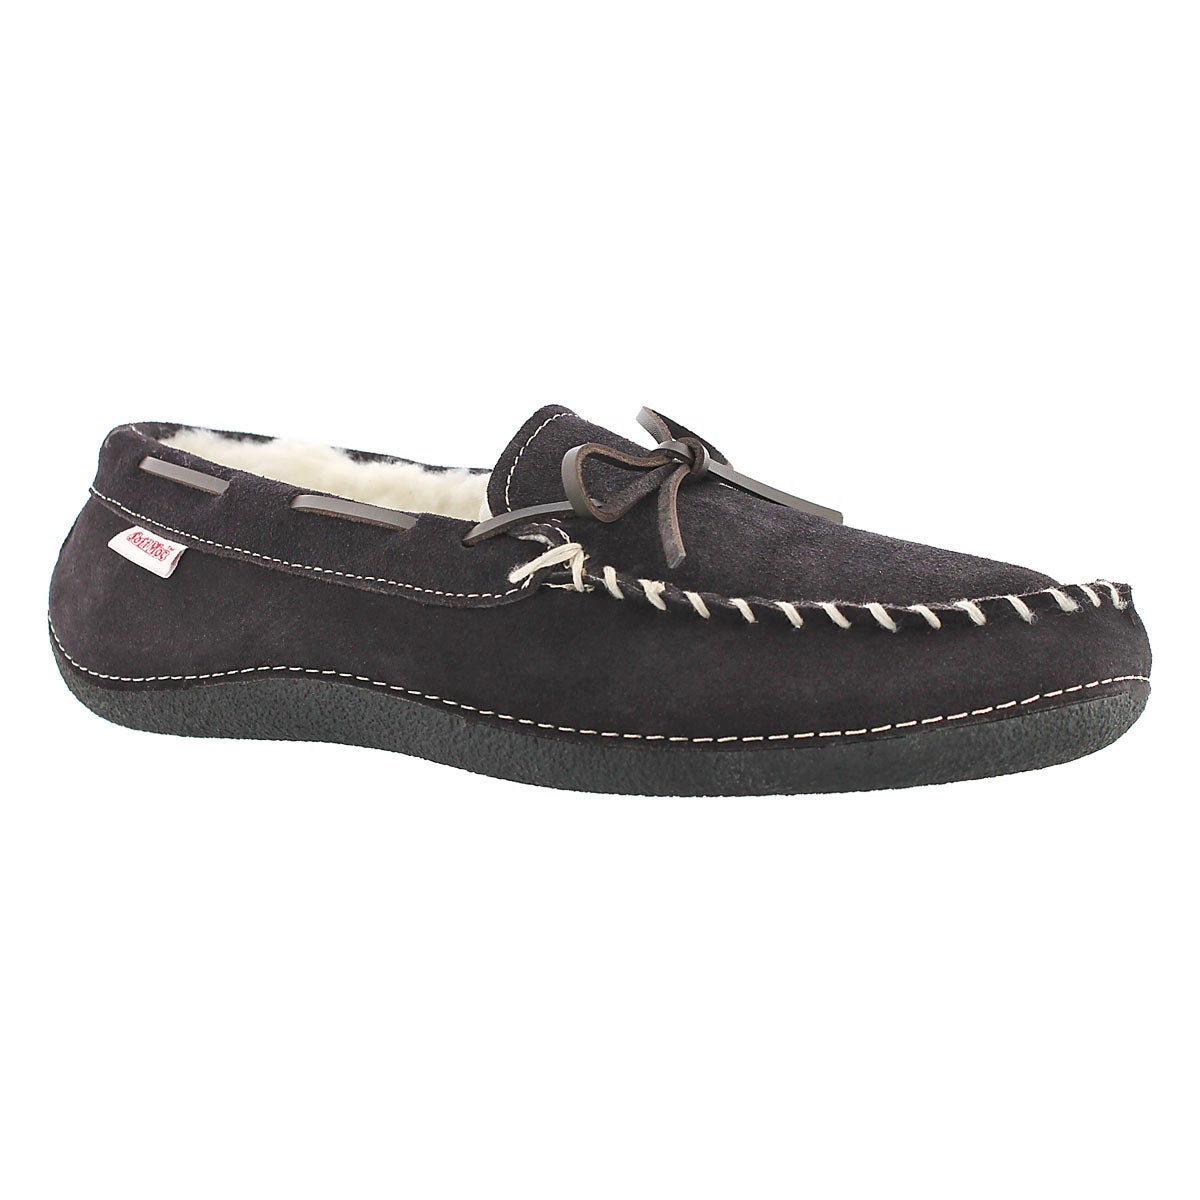 Mns Greg brn fleece lined moc